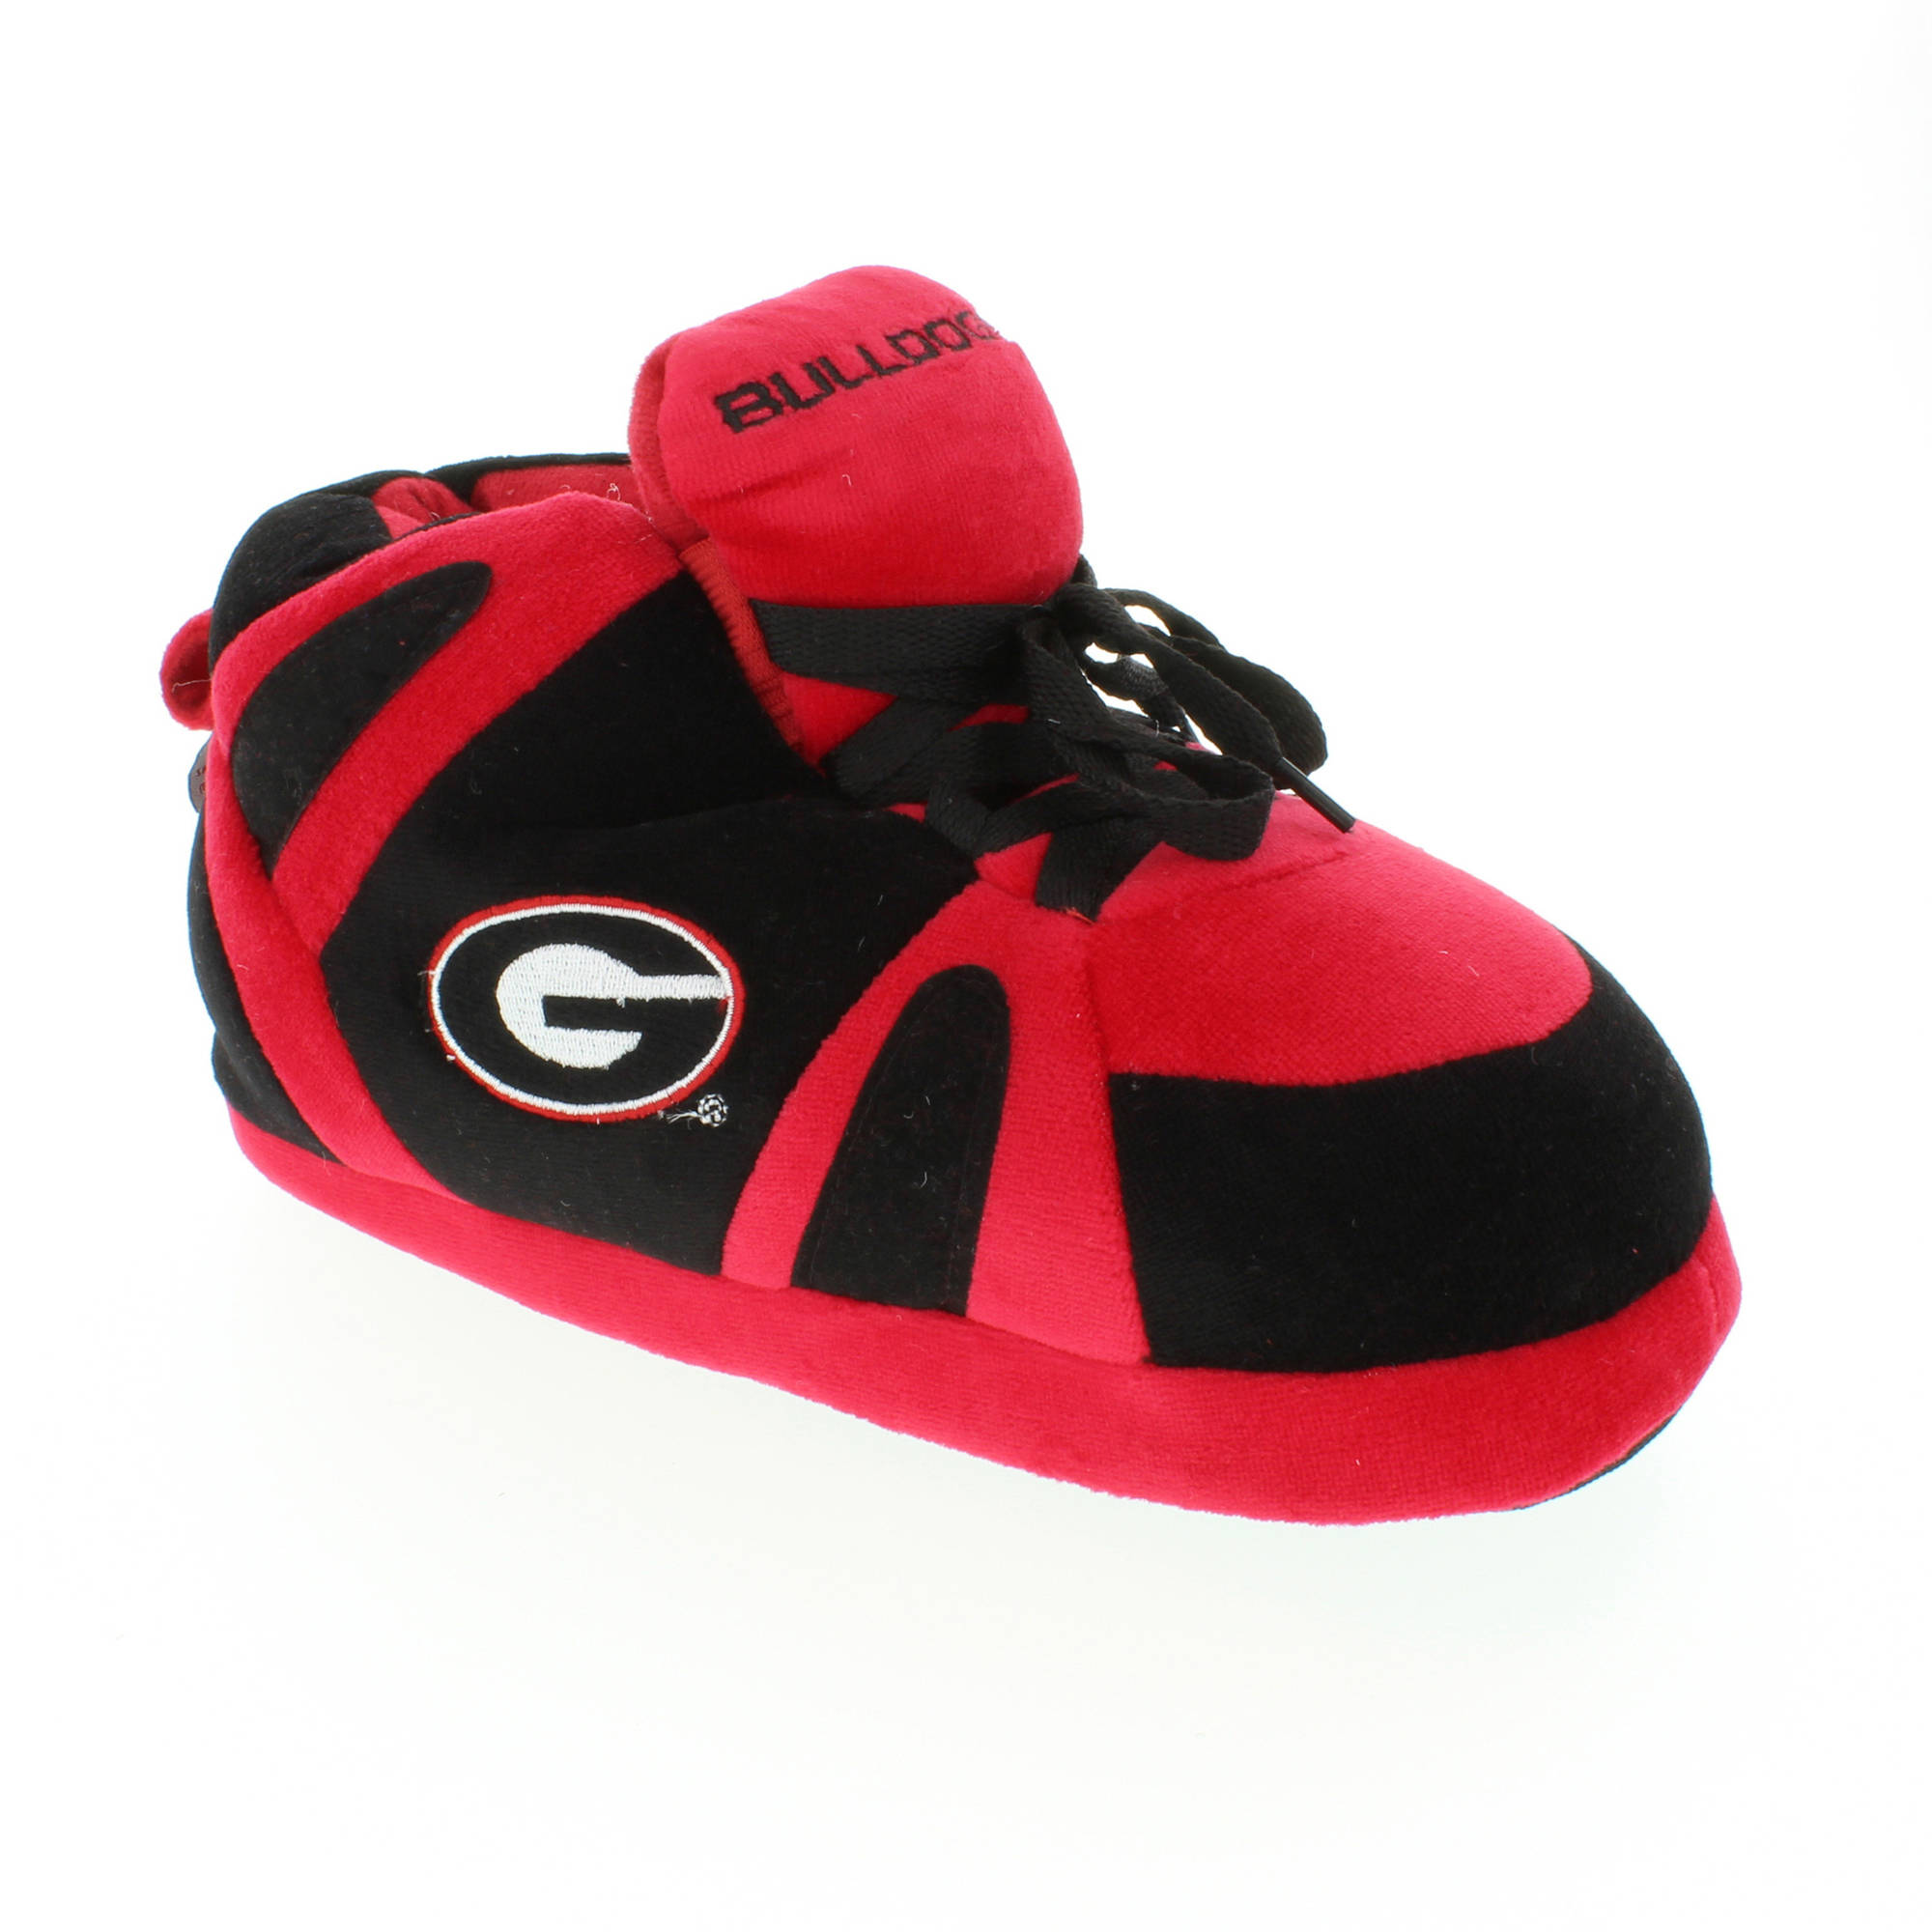 Comfy Feet - NCAA Georgia Bulldogs Slipper